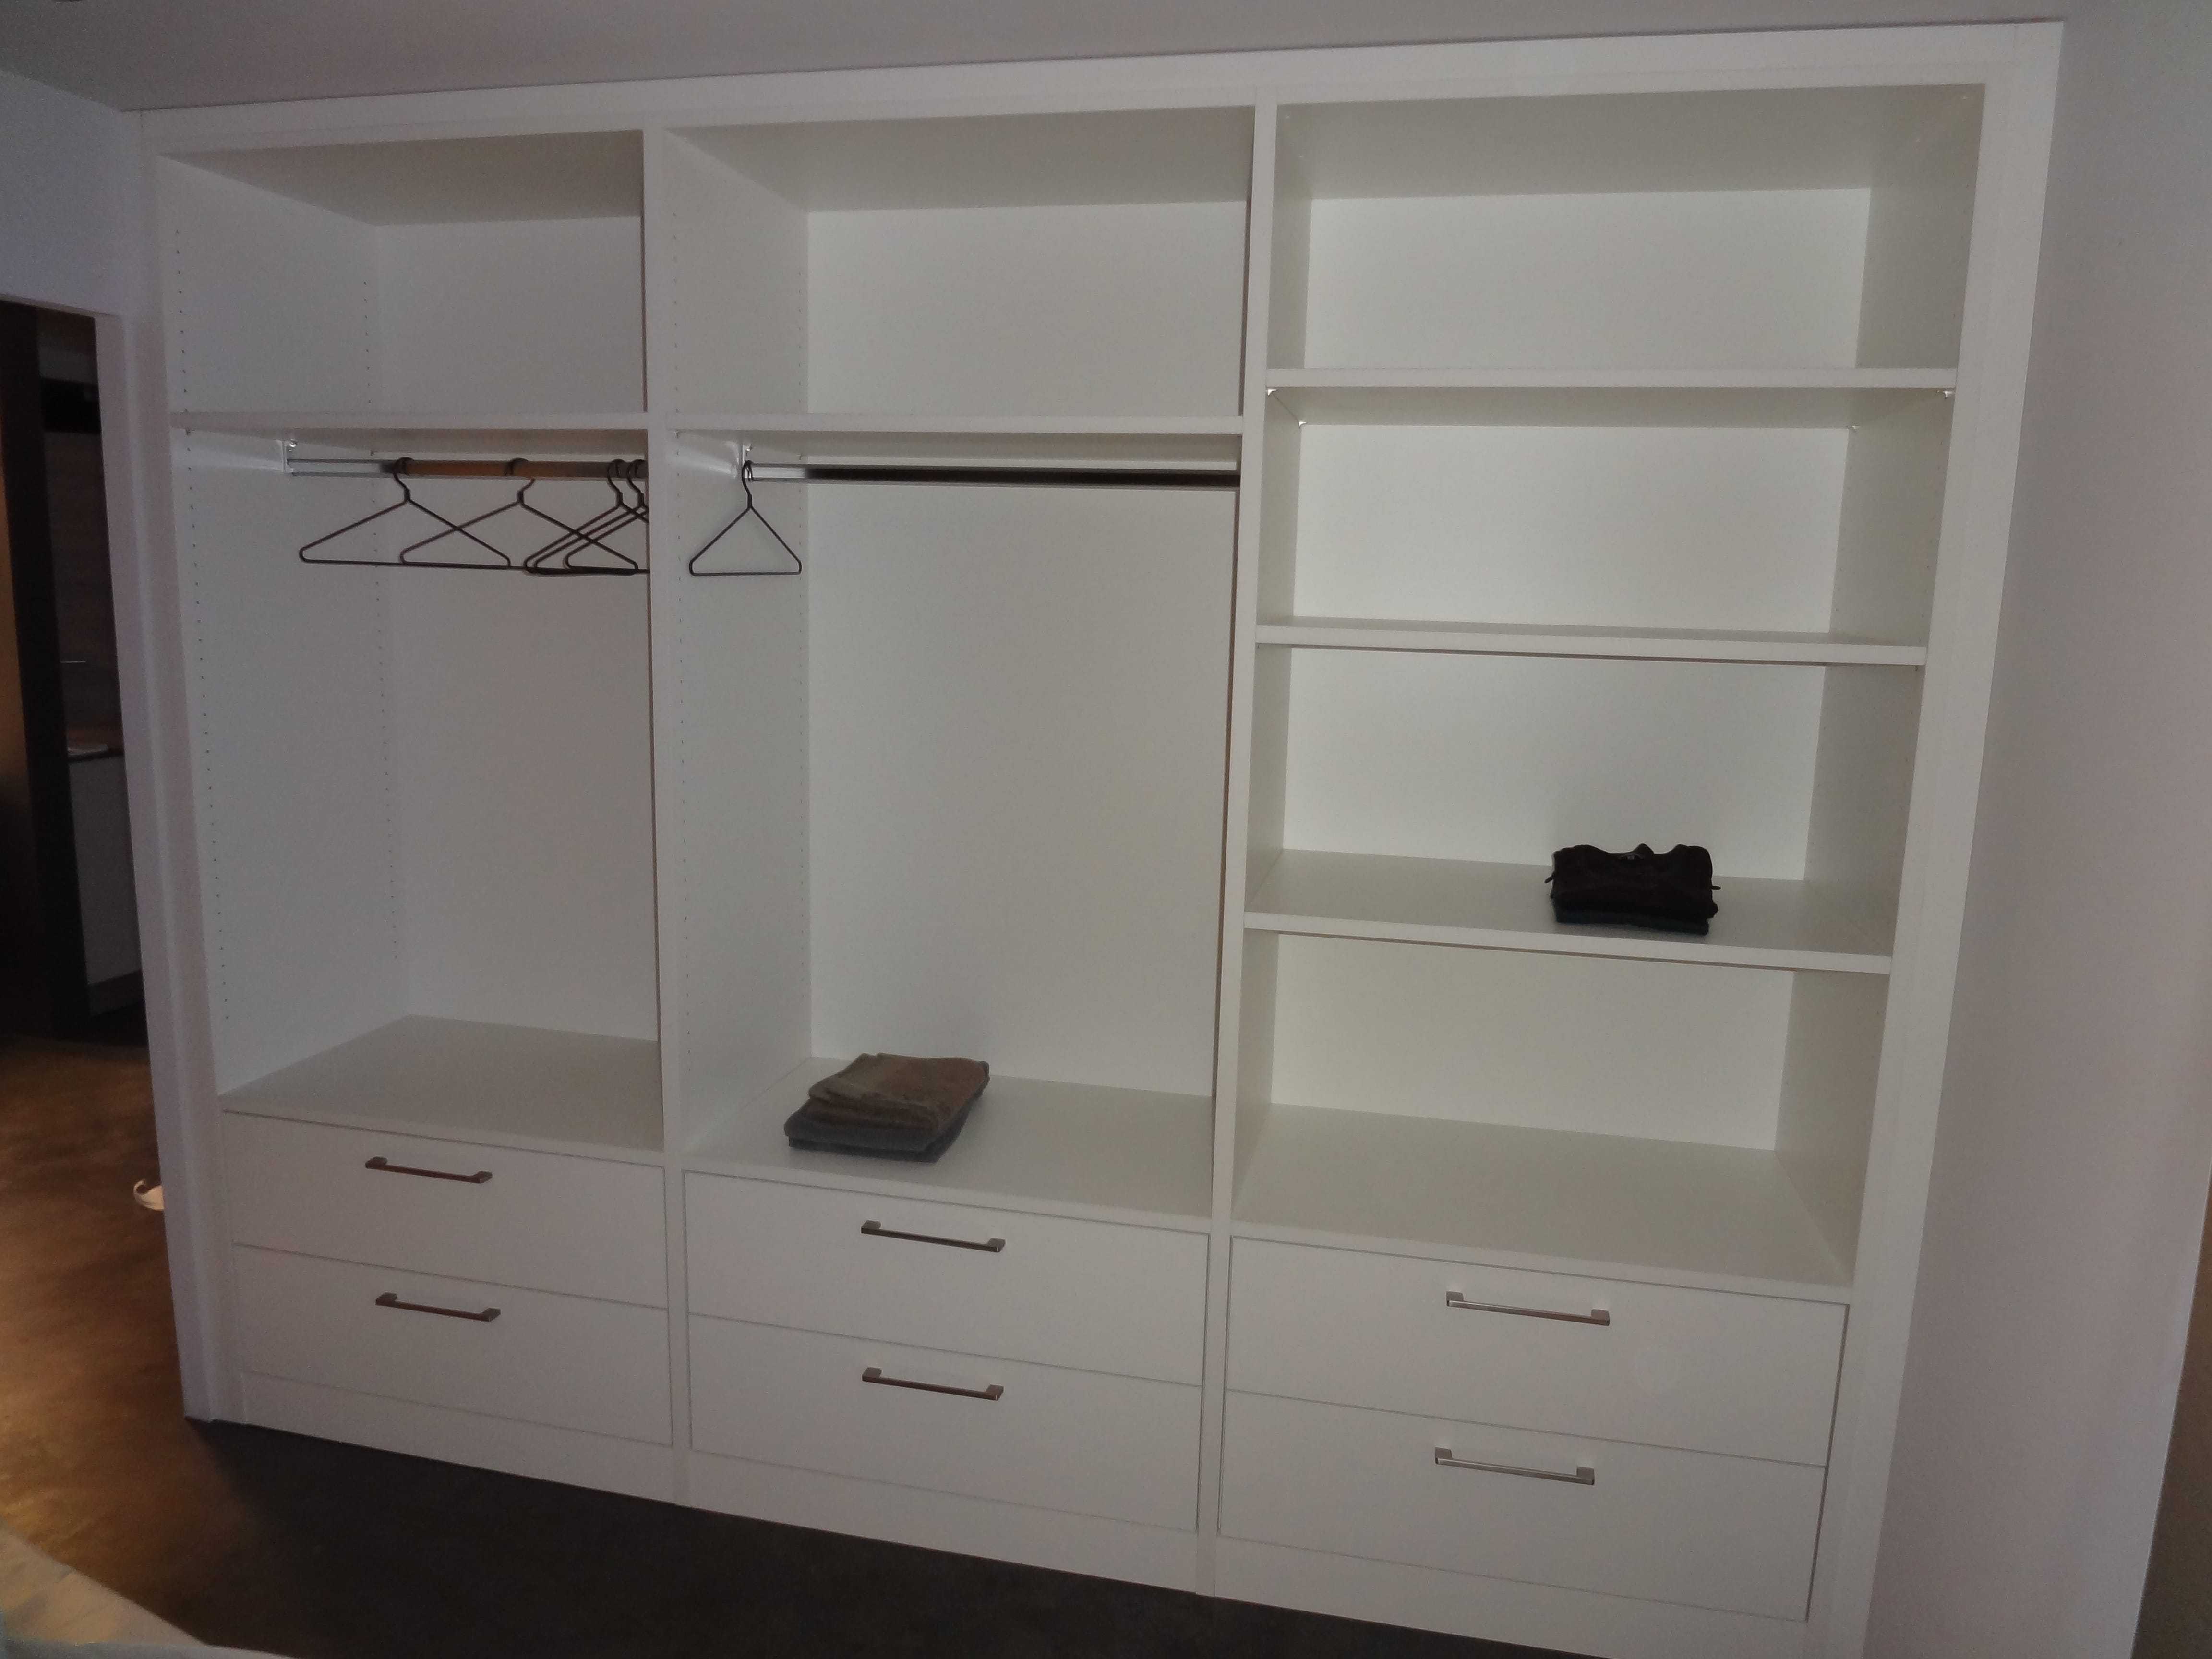 Garderobe weiss interesting beautiful home affaire for Garderobe carlton